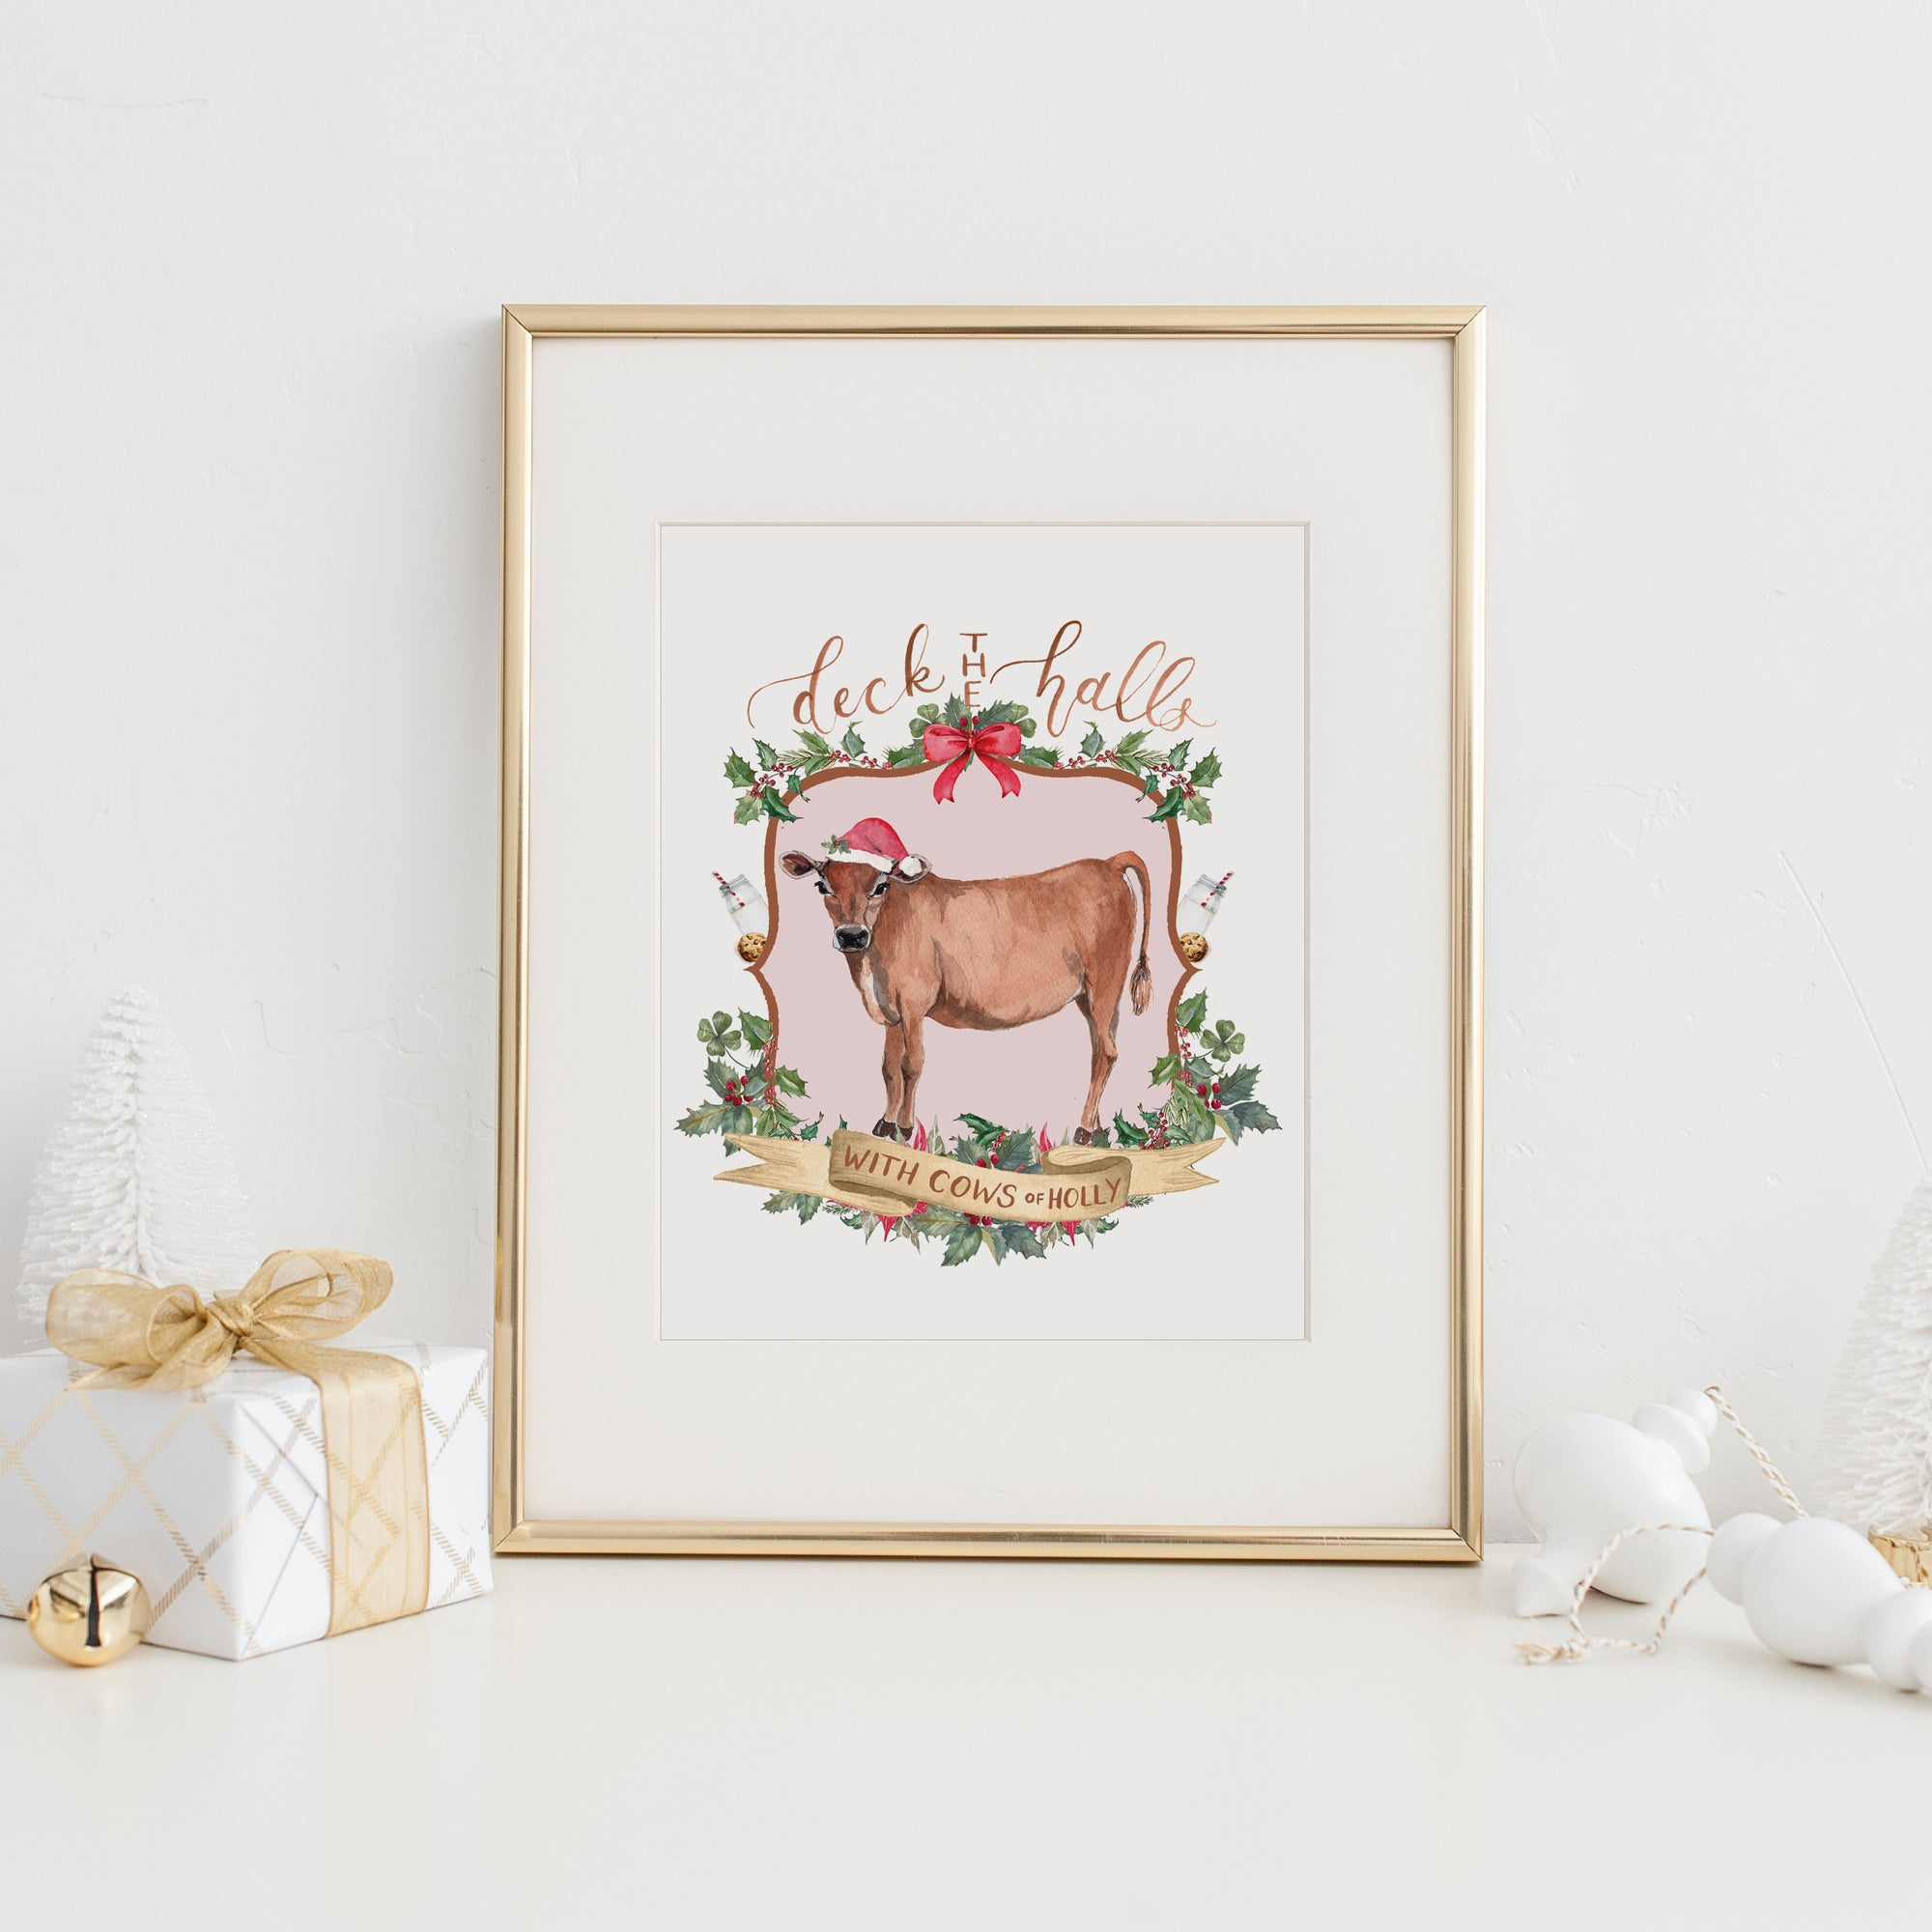 Deck the Halls with Cows of Holly Art Print